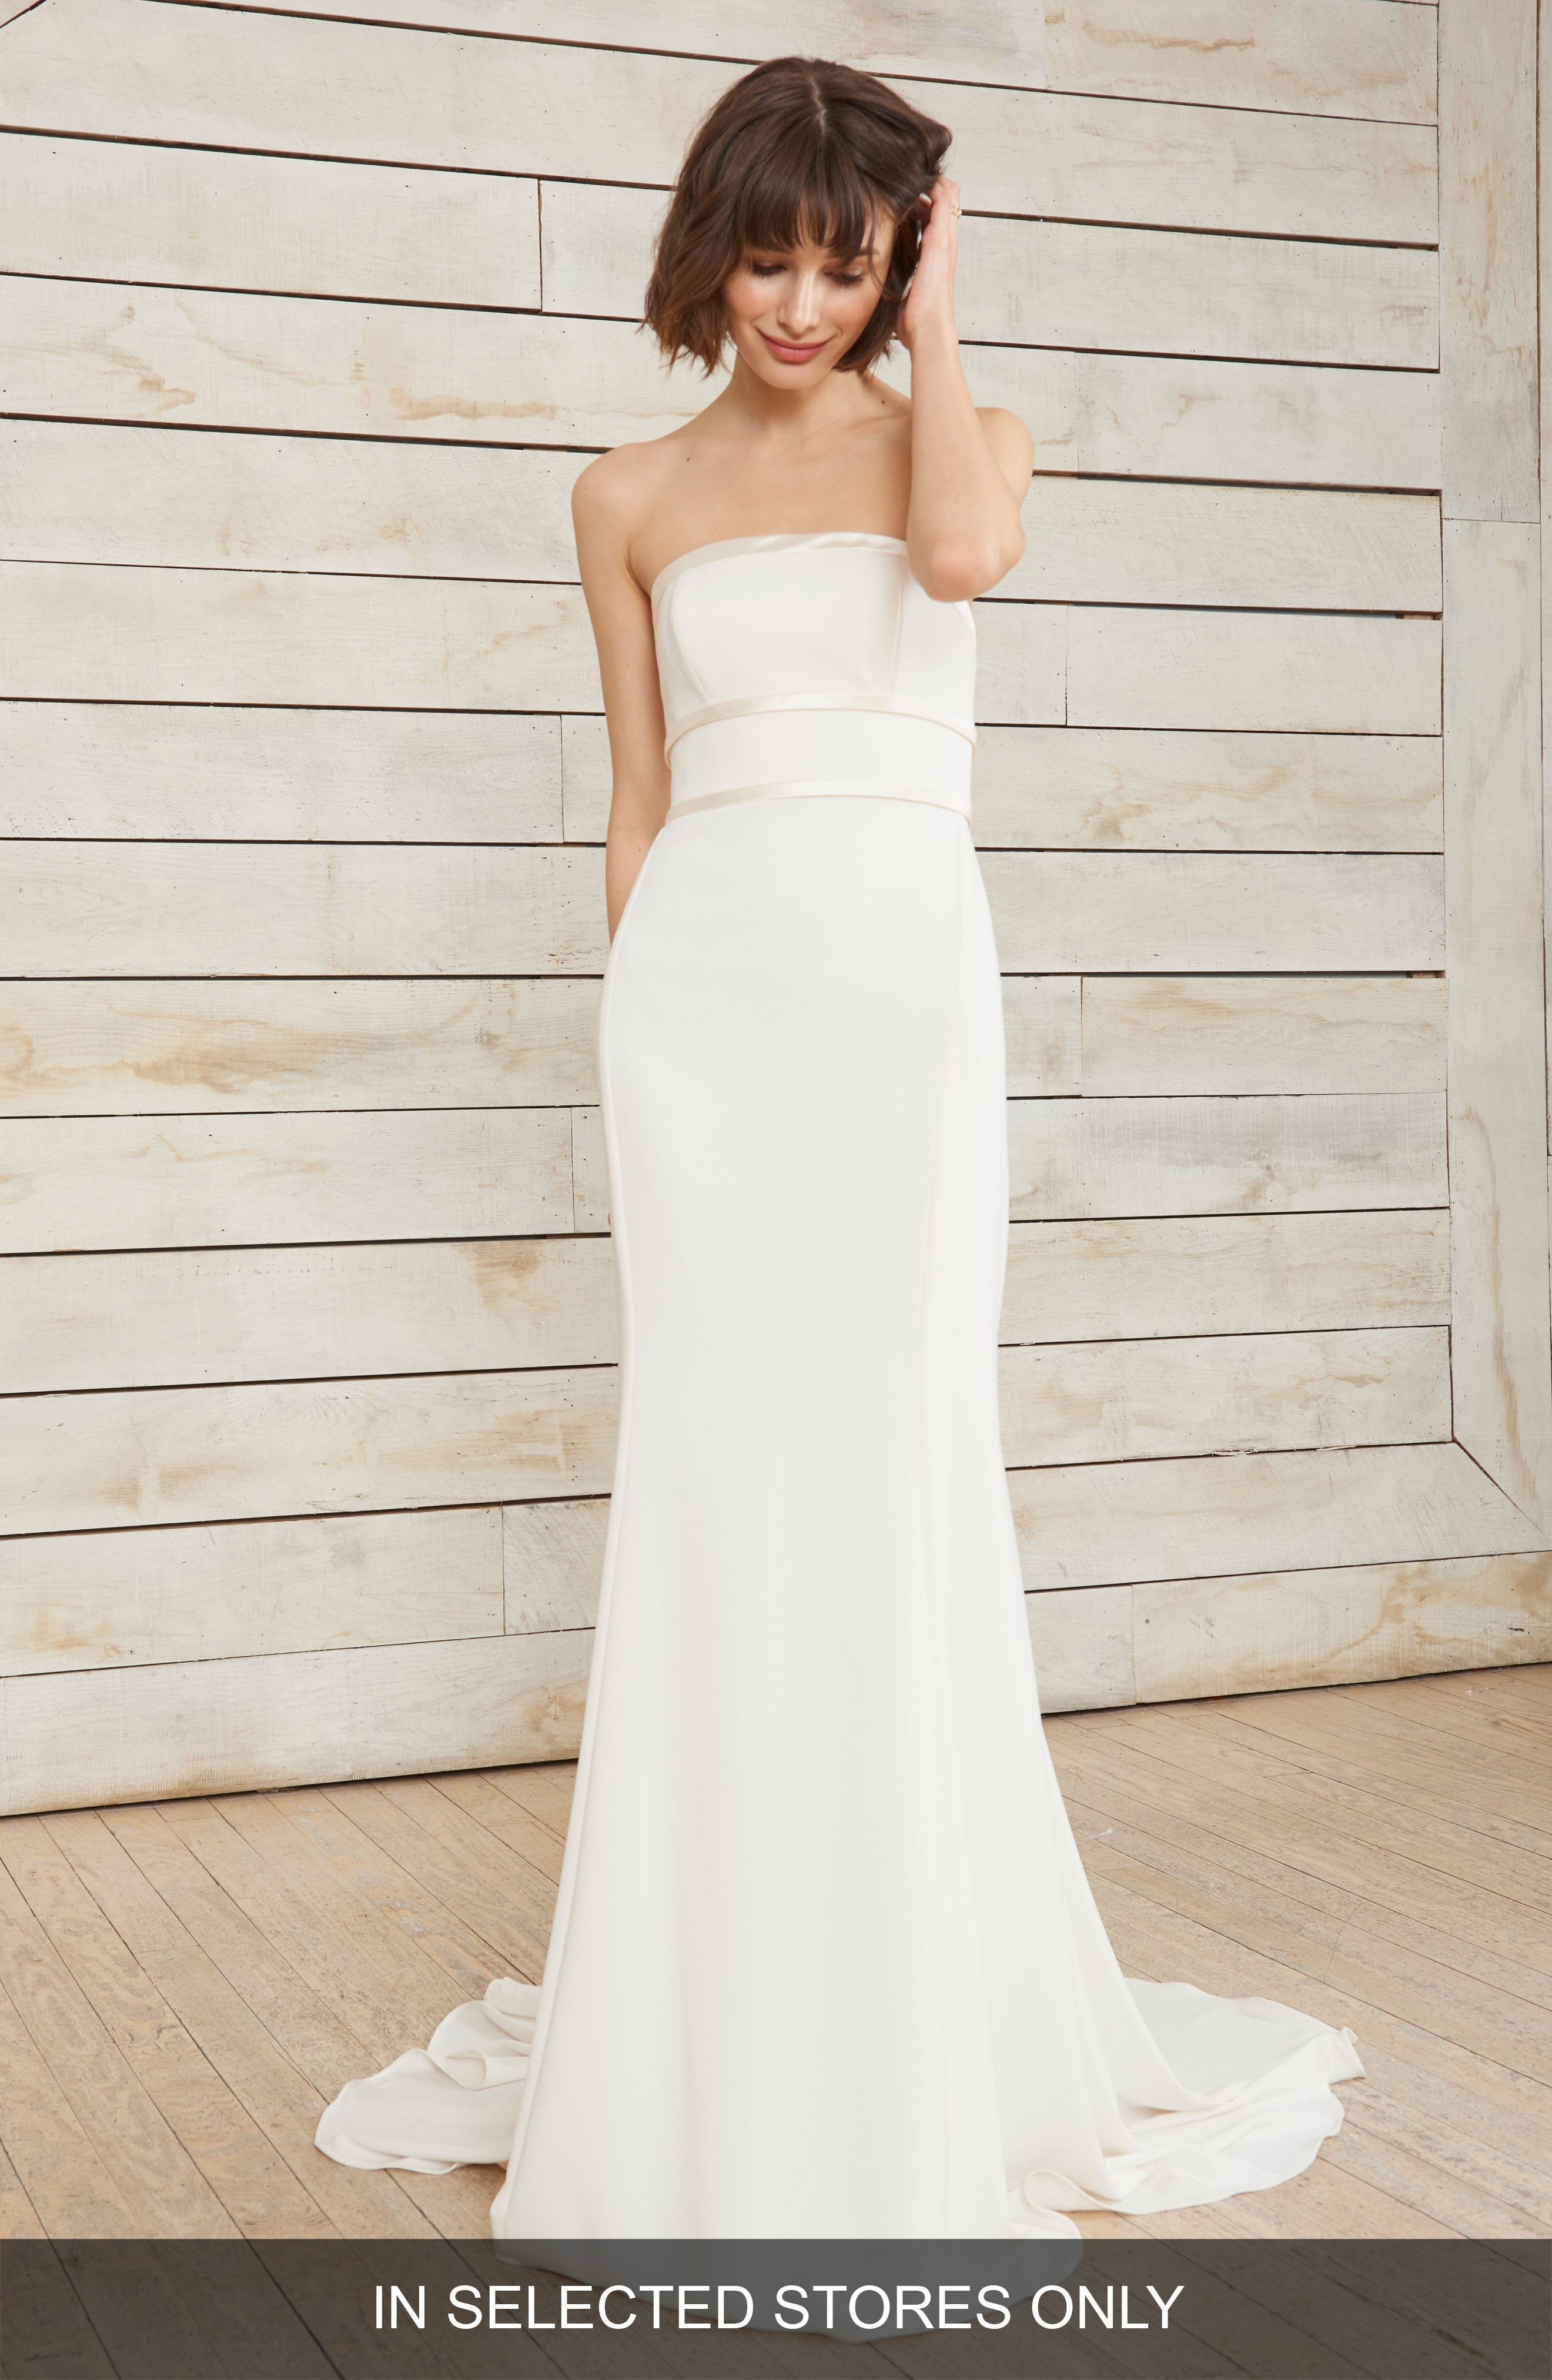 Nouvelle Amsale Arielle Bow Detail Strapless Crepe Gown, Size IN STORE ONLY - Ivory